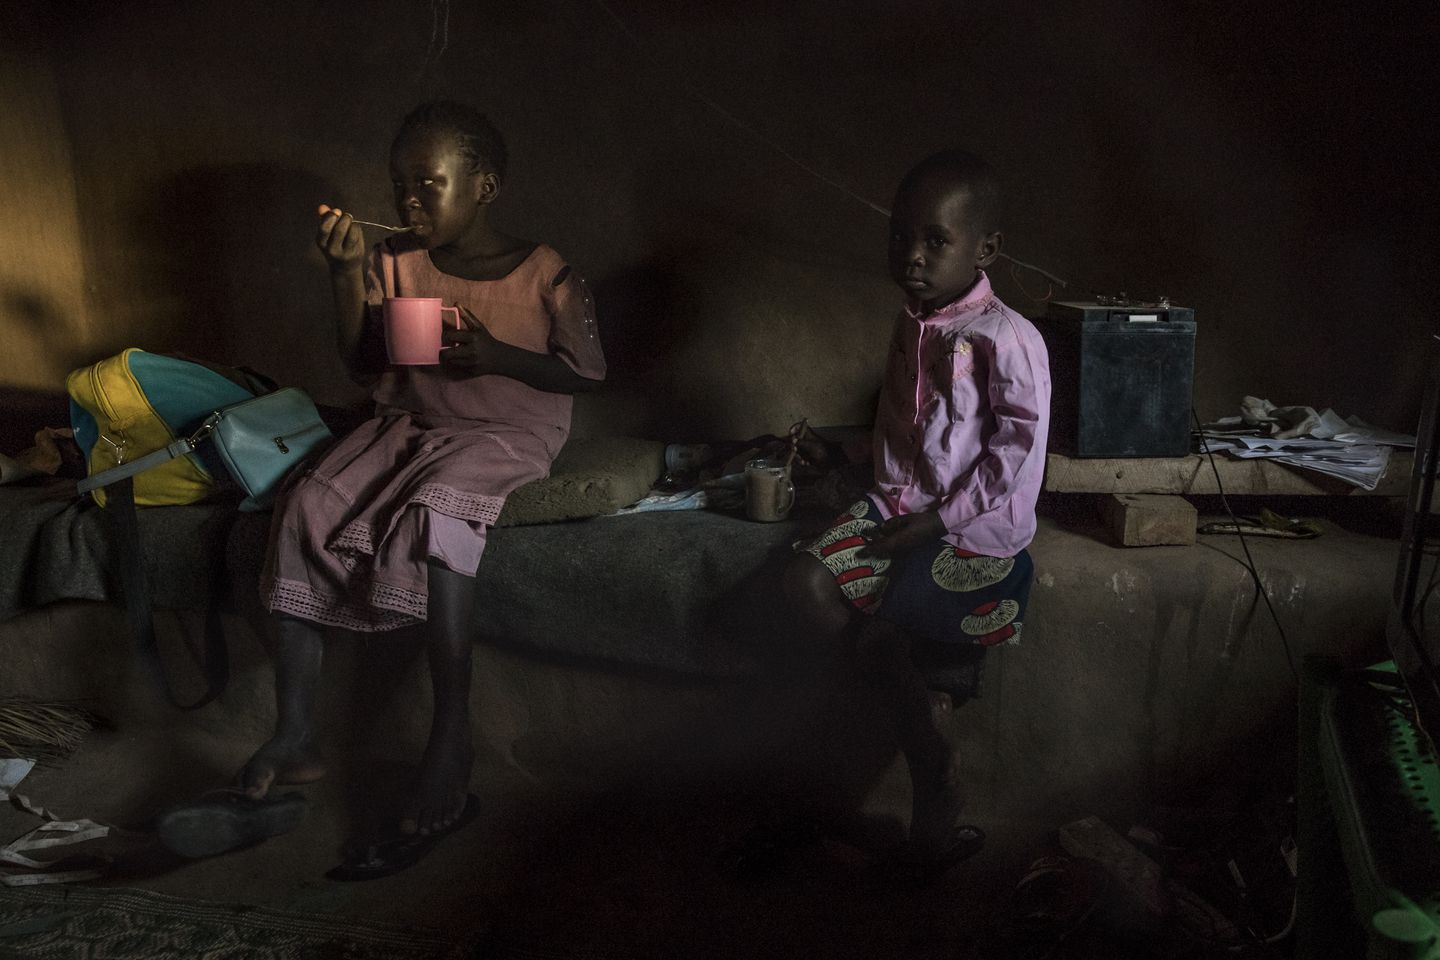 Lynda (left) and Julie (right), daughters of Achayo Loum, sat in the family's home in the UNHCR refugee camp.